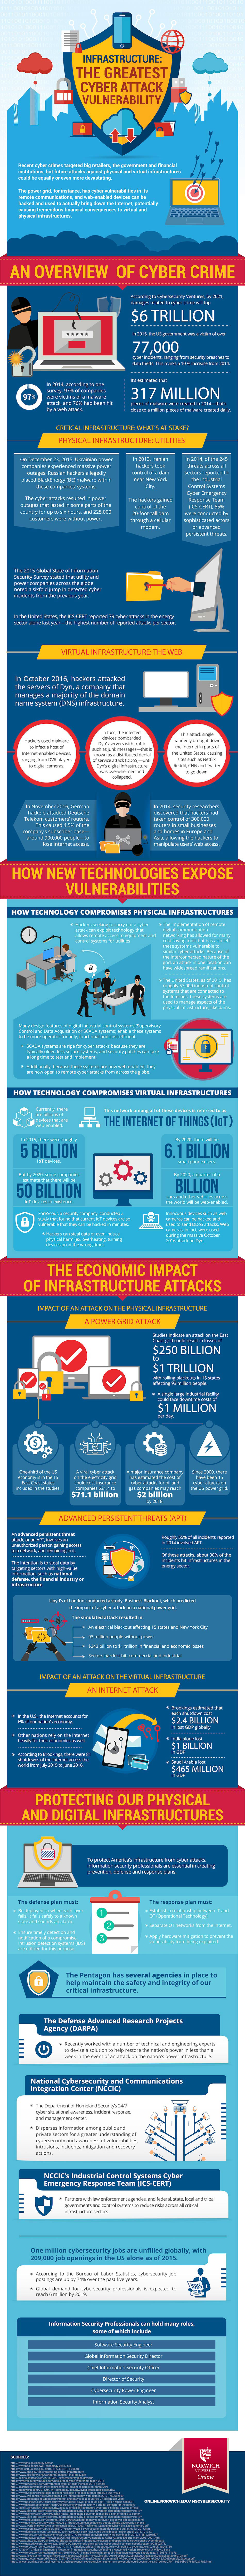 infographic on cyber attack vulnerabilities